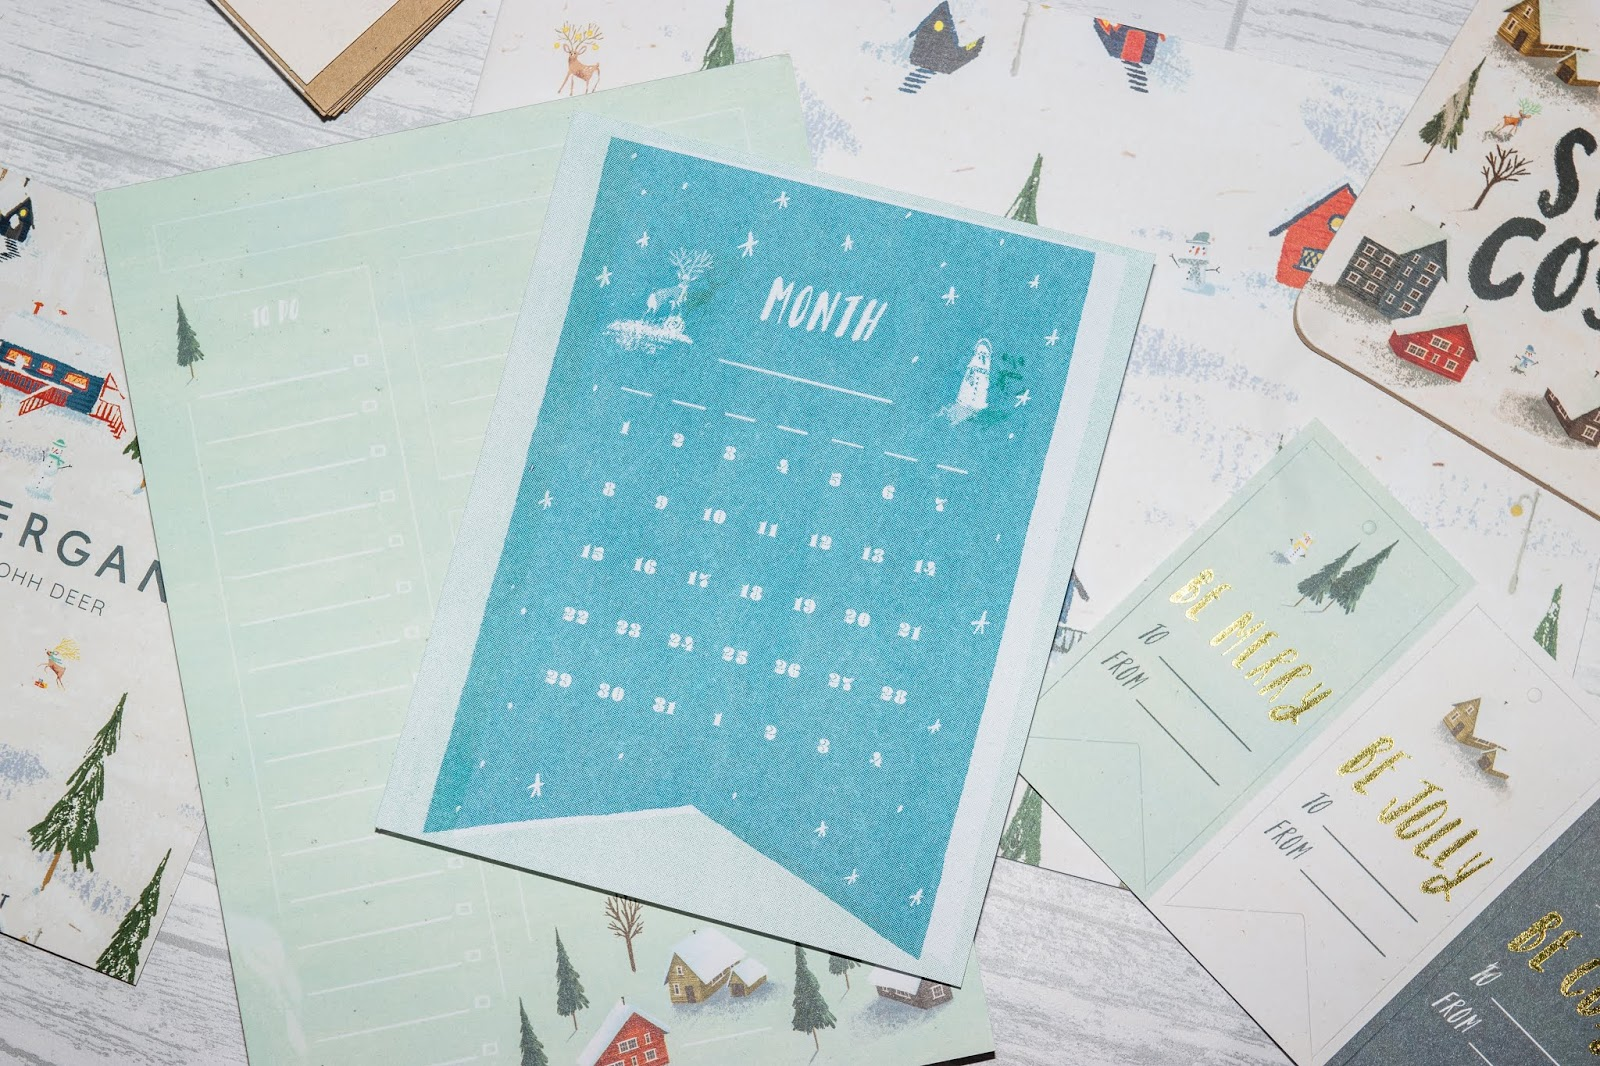 A month of the year card with a bright blue snowy design.